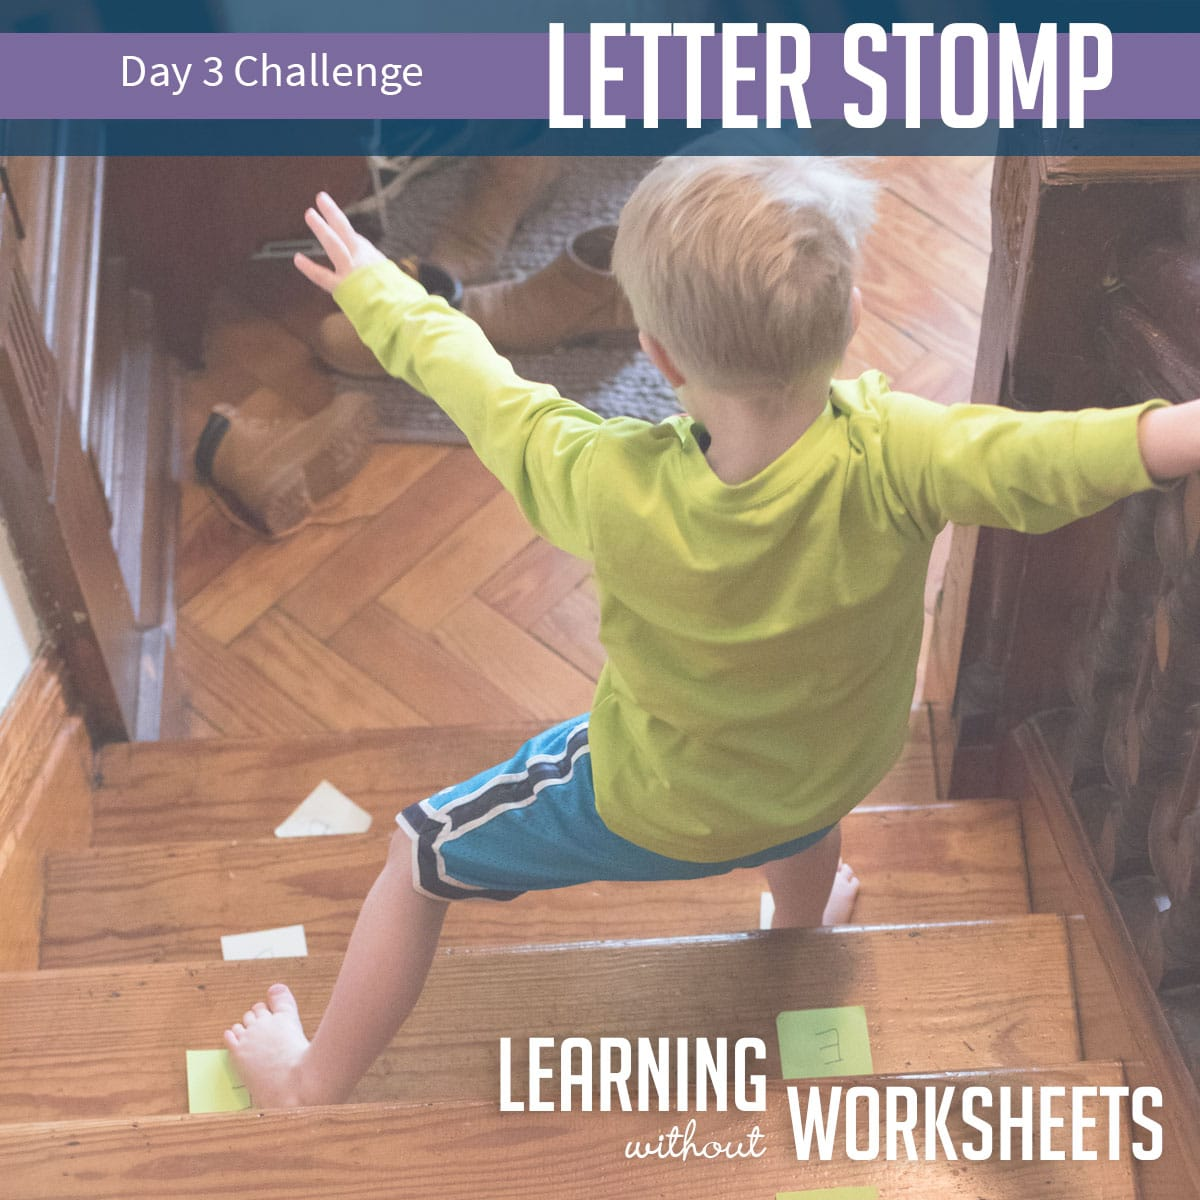 Learning Without Worksheets Challenge: Day 3!